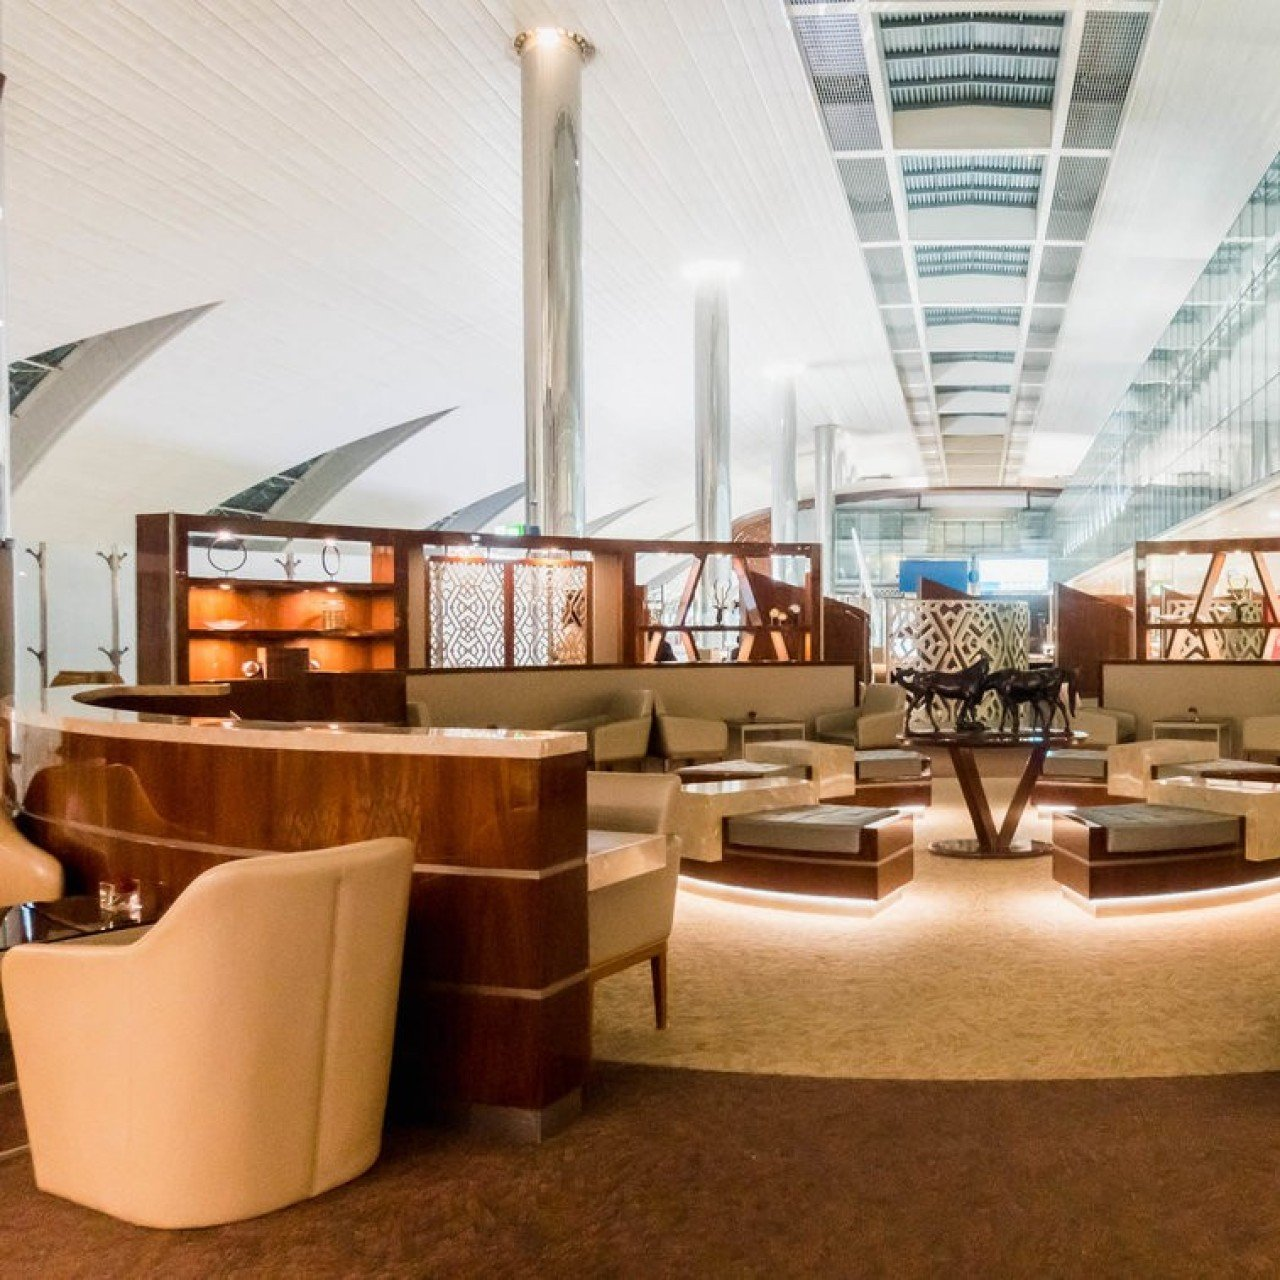 Is Emirates' flagship business class lounge at Dubai airport